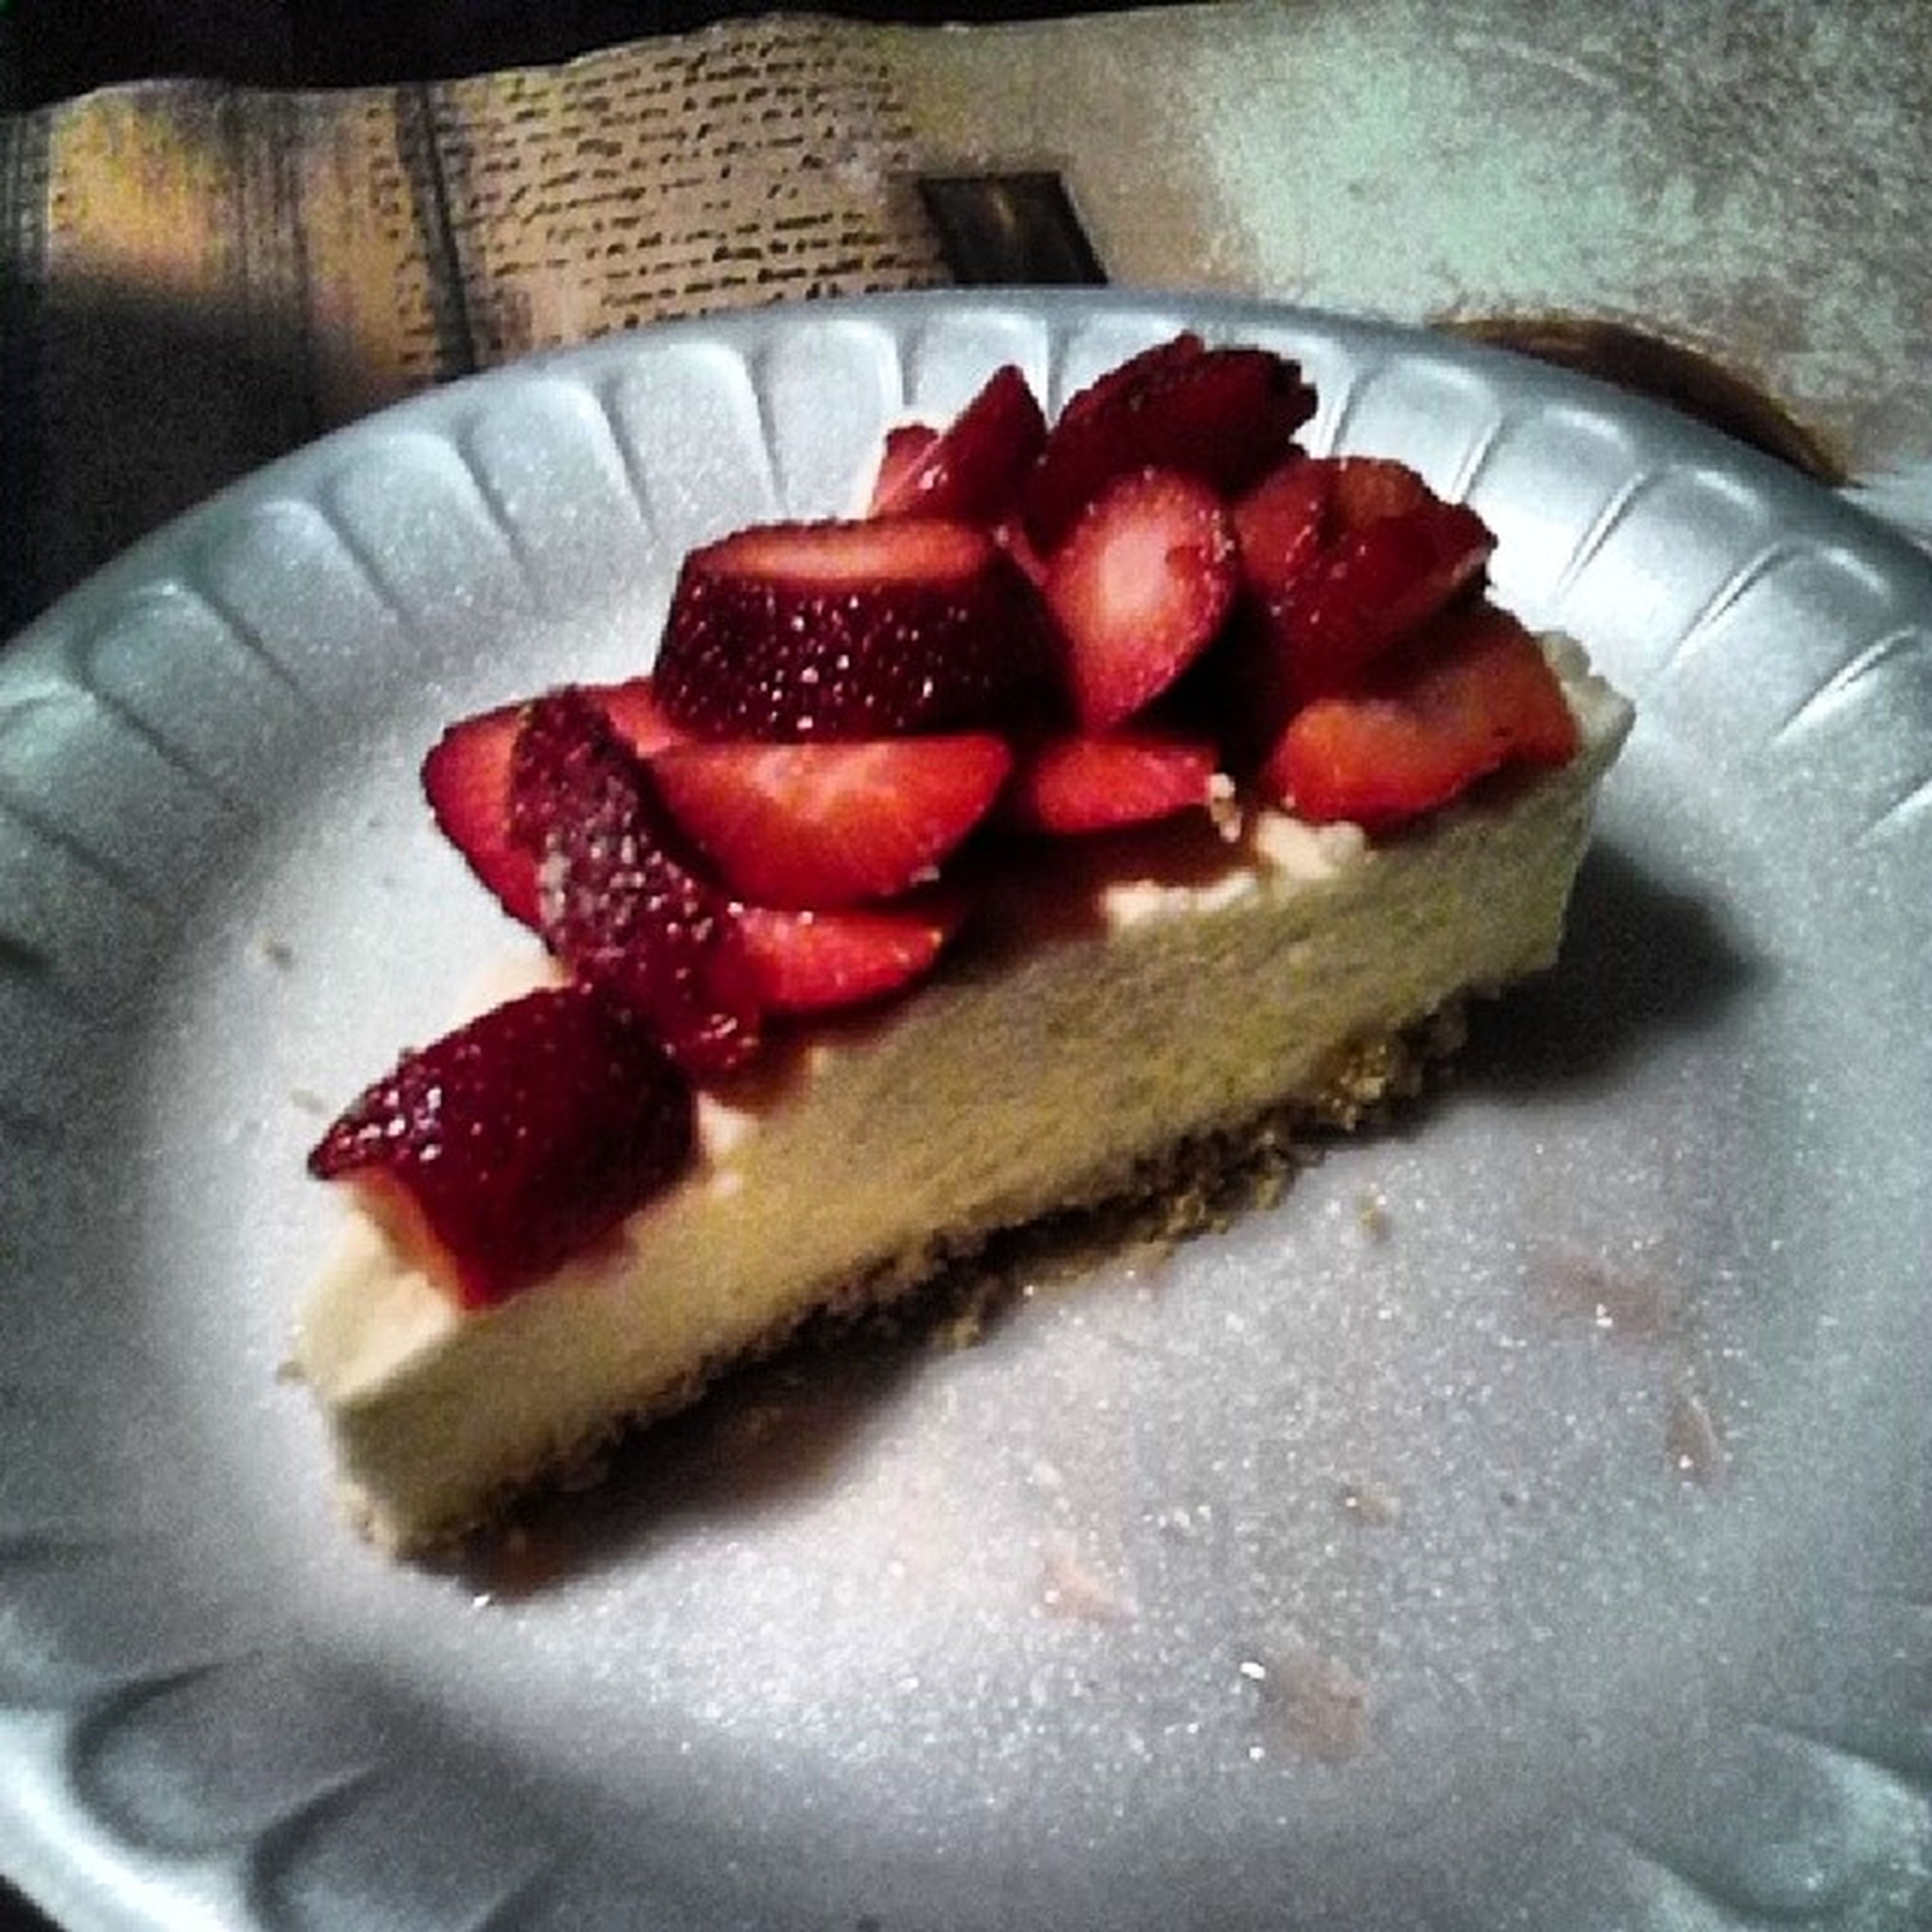 food and drink, food, freshness, indoors, ready-to-eat, strawberry, sweet food, fruit, plate, indulgence, still life, red, dessert, close-up, healthy eating, temptation, slice, cake, serving size